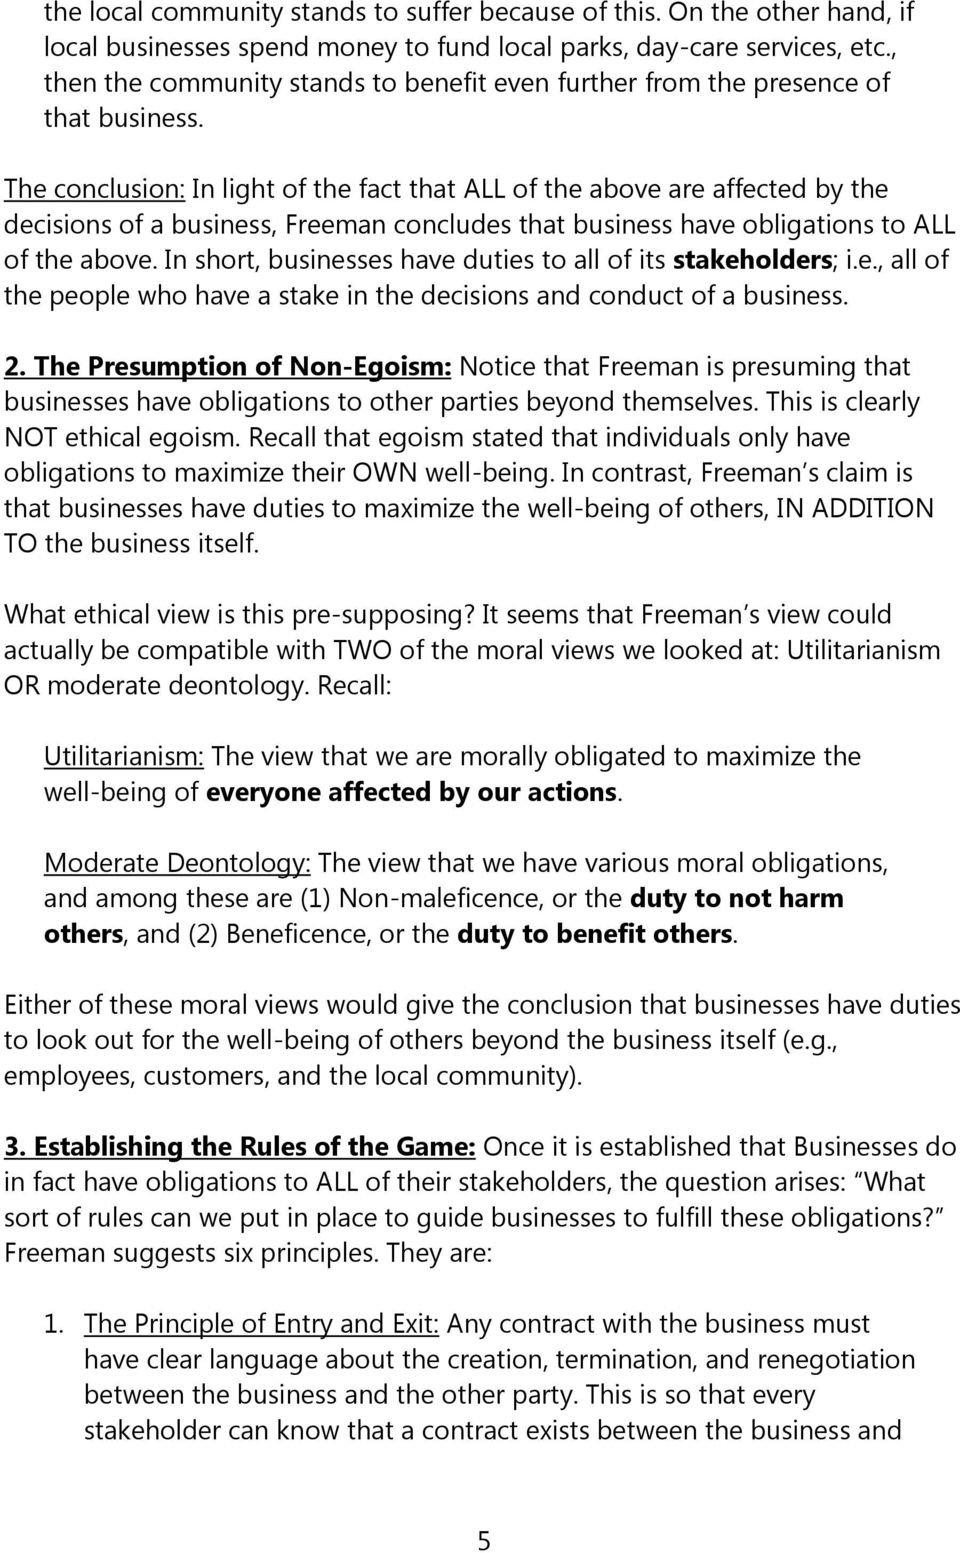 The conclusion: In light of the fact that ALL of the above are affected by the decisions of a business, Freeman concludes that business have obligations to ALL of the above.